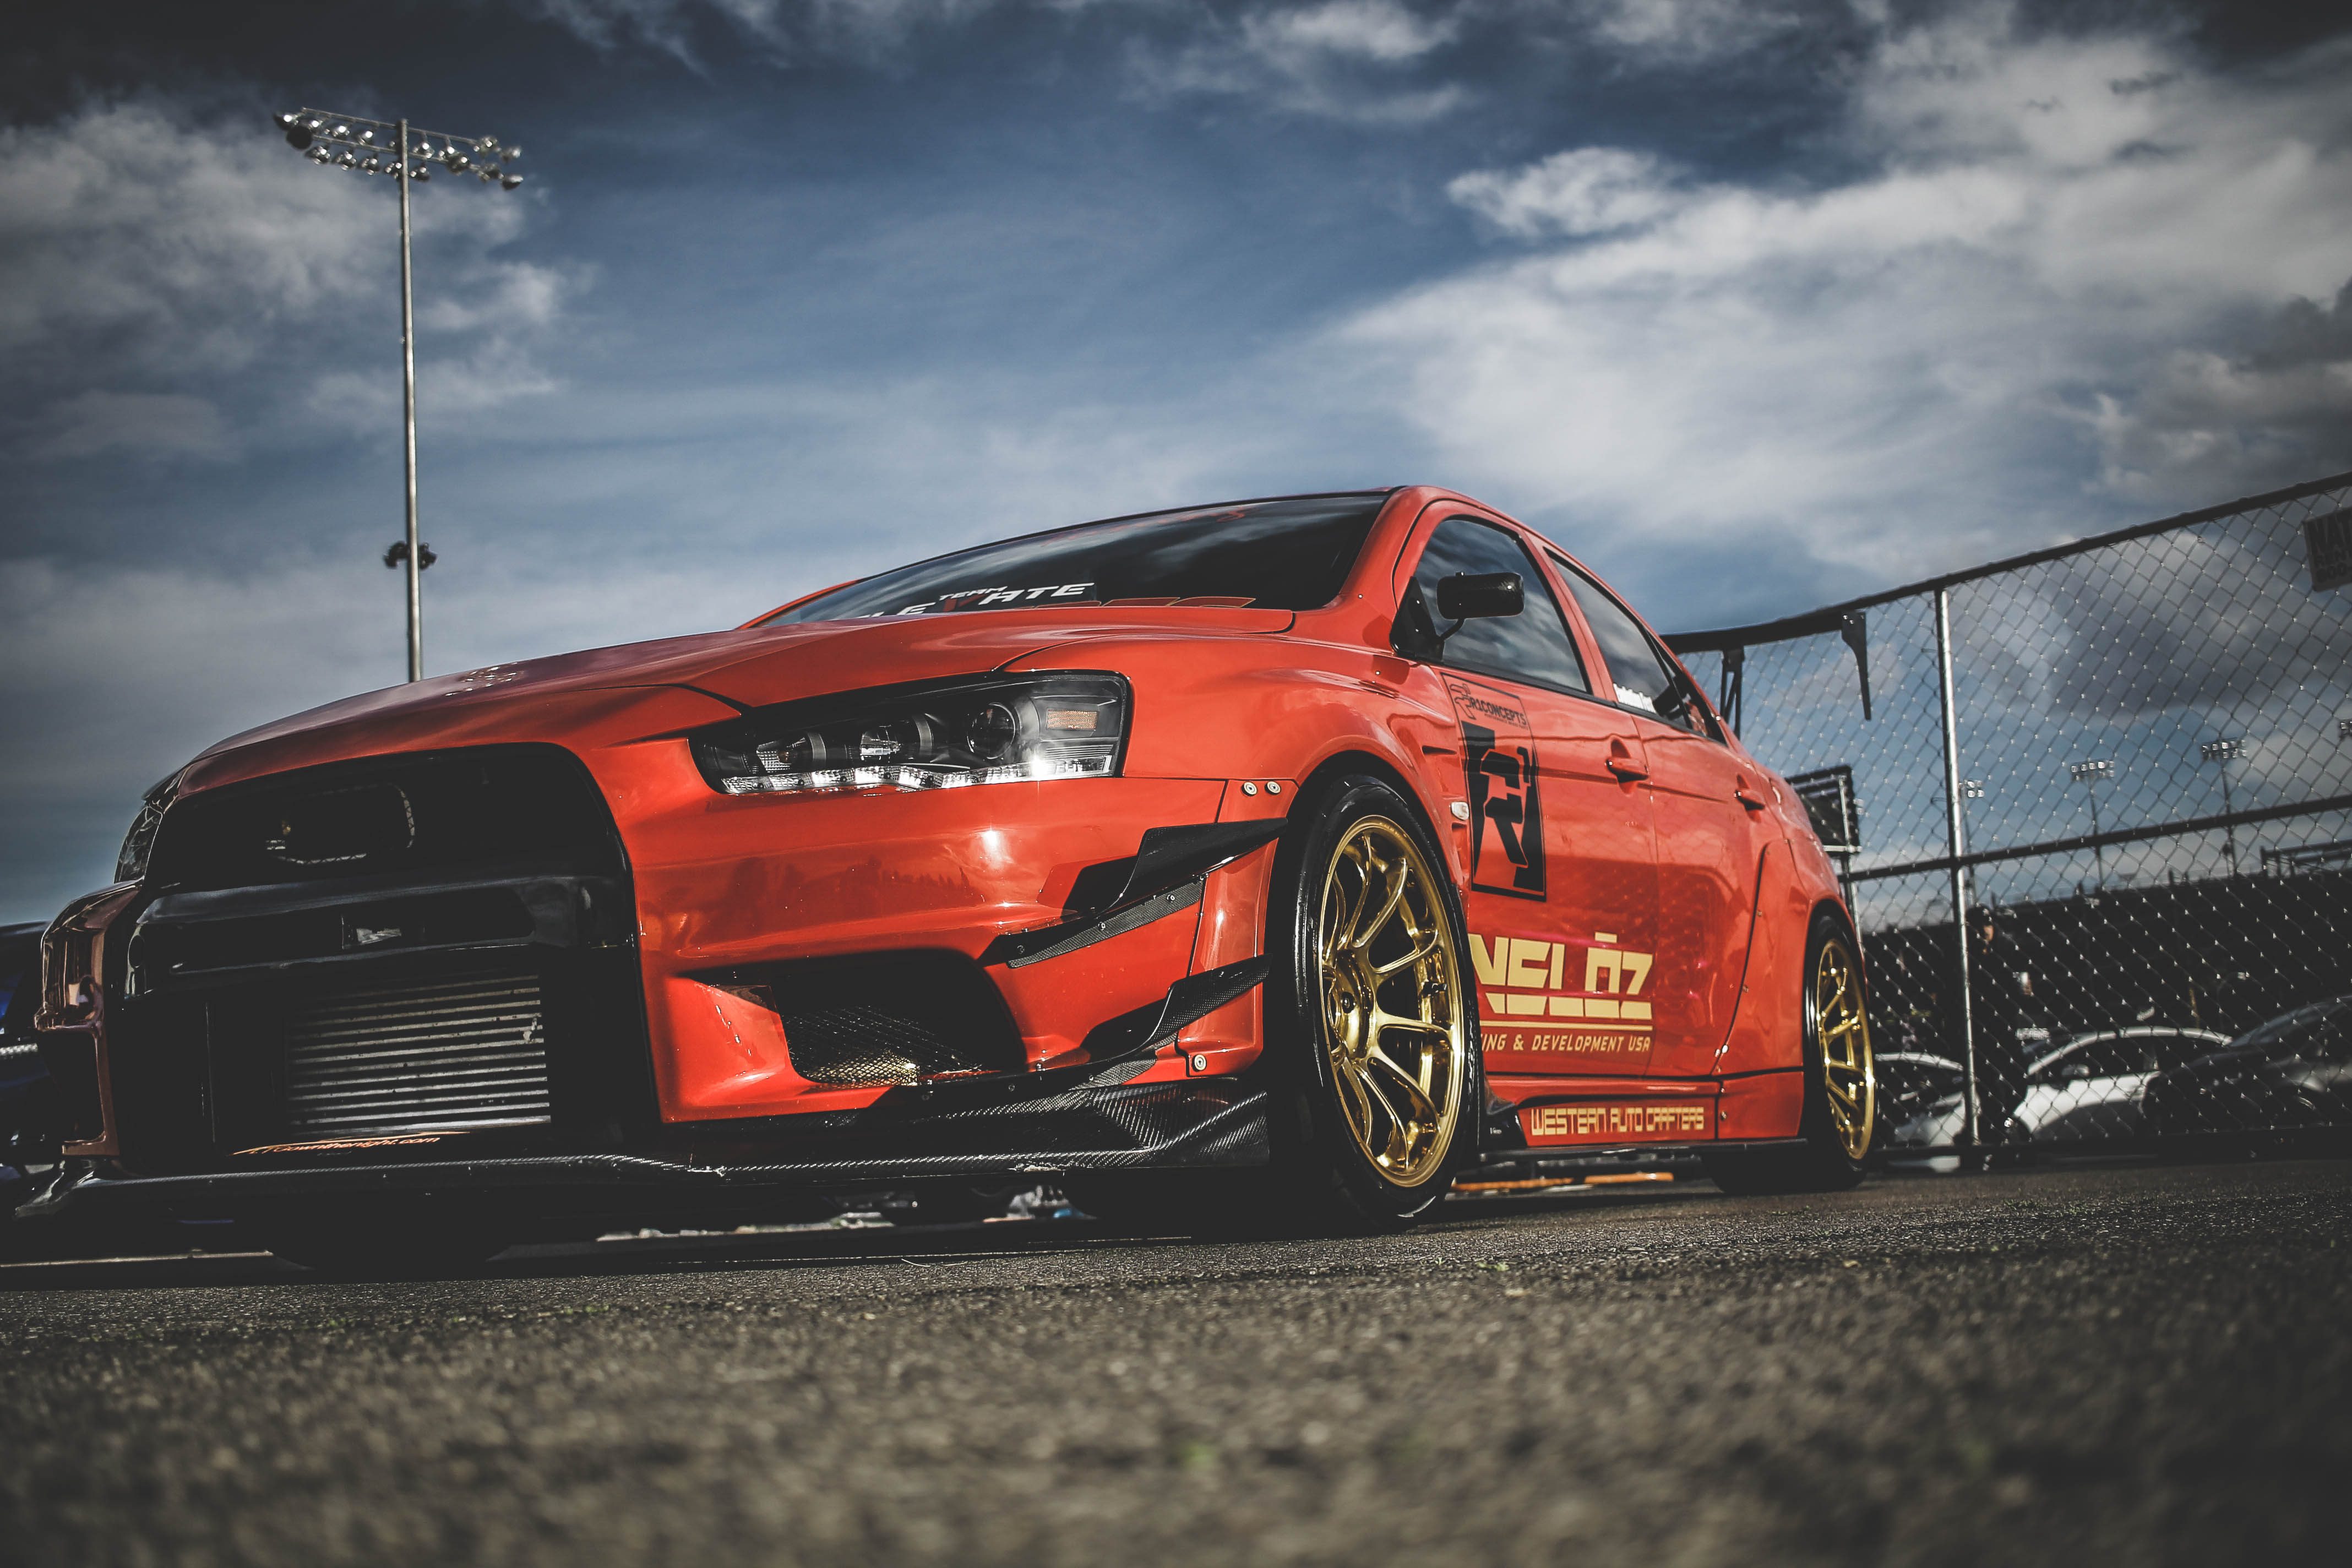 130984 download wallpaper Cars, Mitsubishi Lancer Evolution X, Mitsubishi, Sports Car, Sports, Races, Side View screensavers and pictures for free